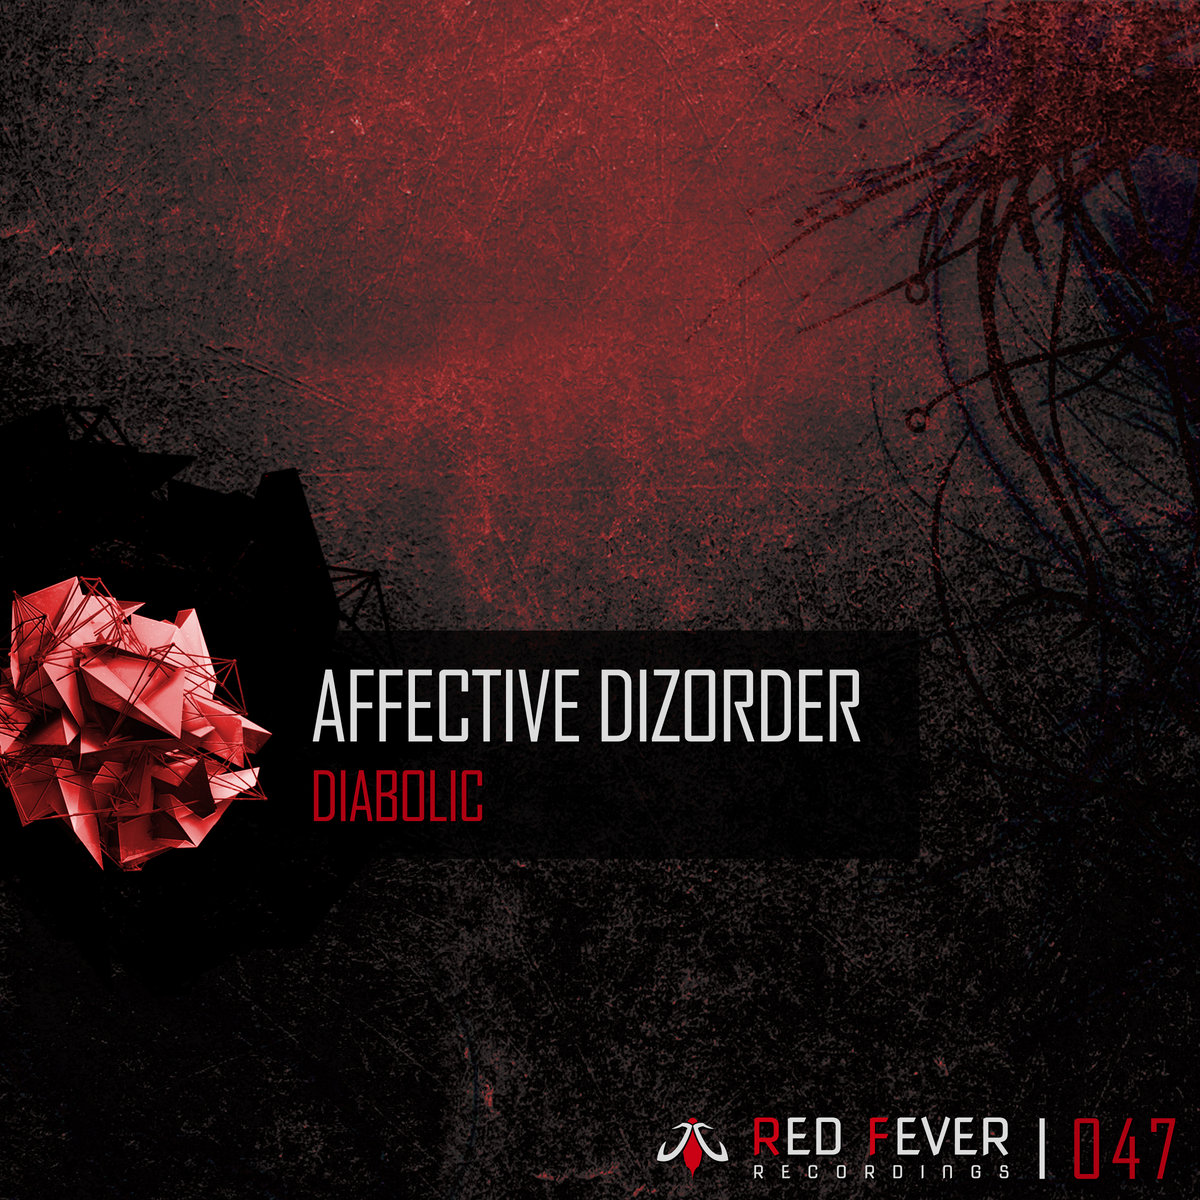 Affective Dizorder - Diabolic (artwork)